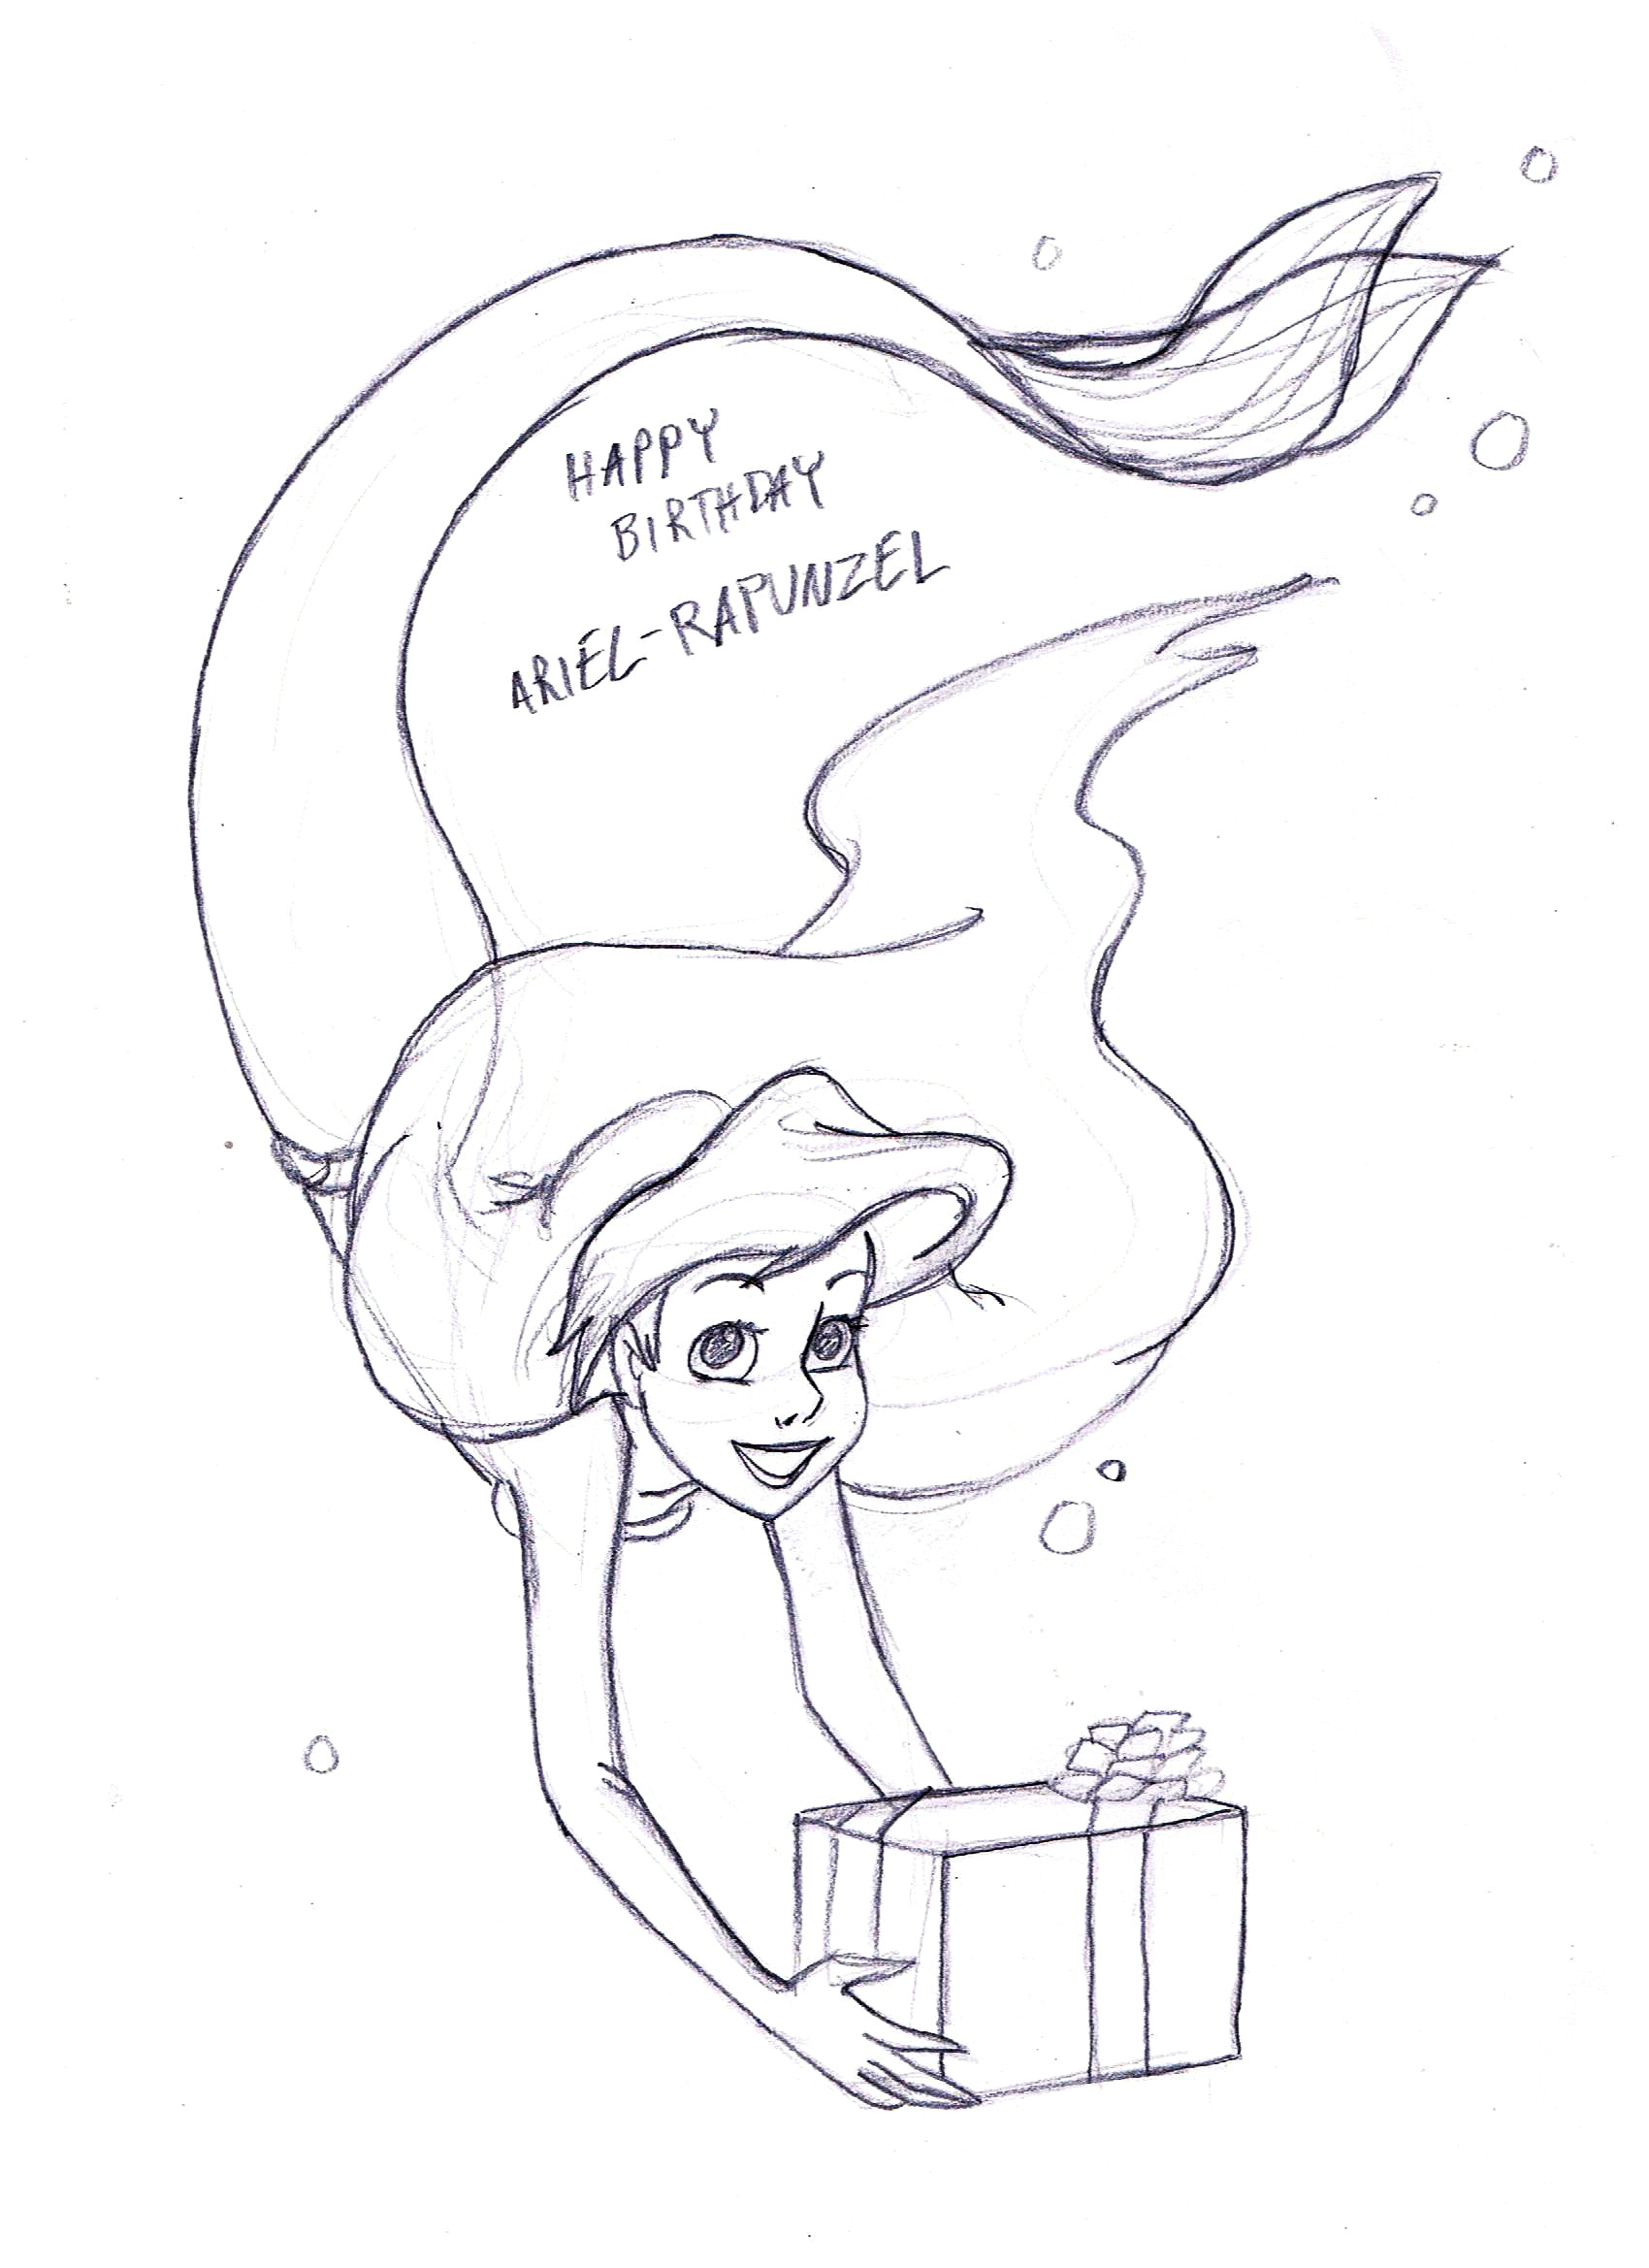 Happy Birthday Ariel Rapunzel Disney Princesas Fã Art